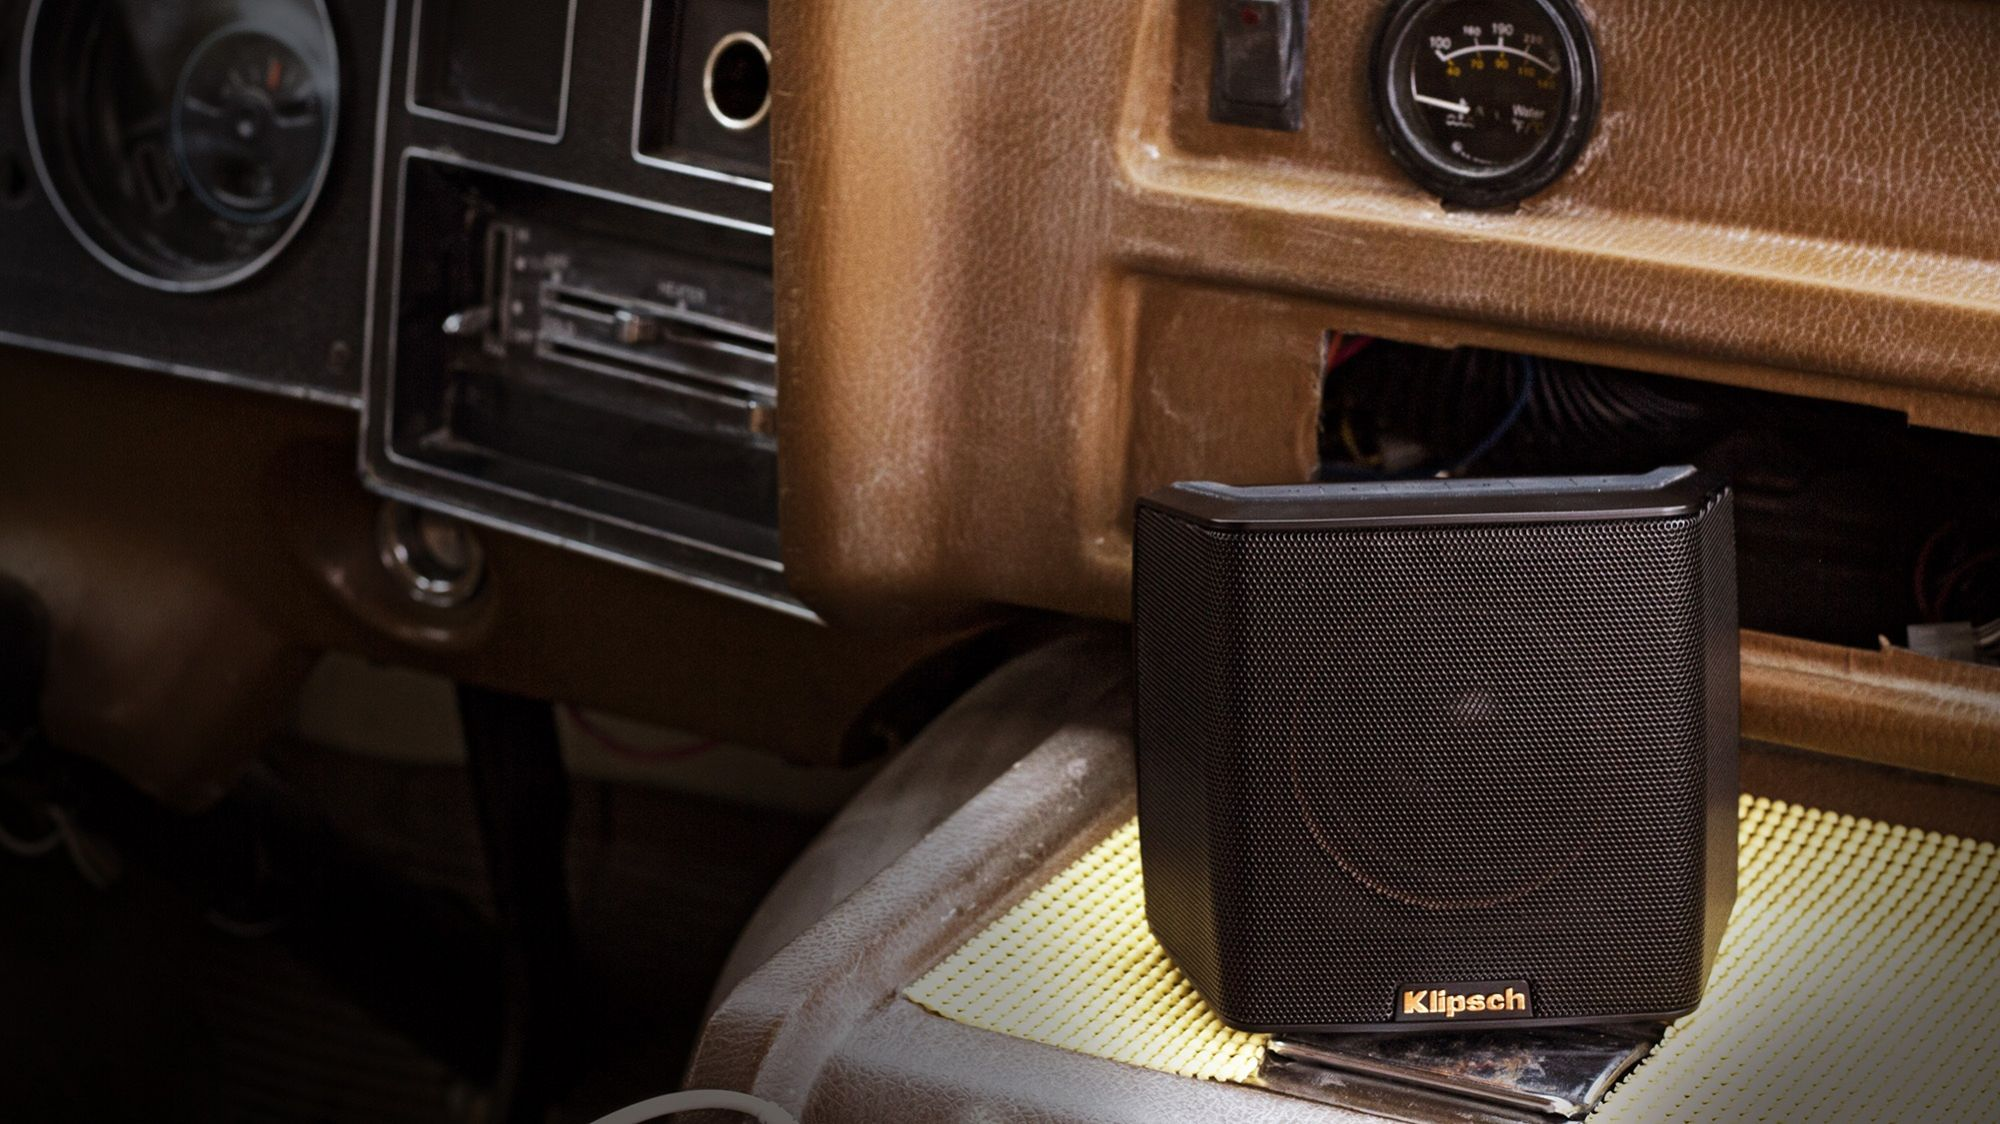 klipsch bluetooth speaker. keep the party going all night with groove\u0027s rechargeable battery lasting up to 8 hours on a single charge. additionally, it features durable, klipsch bluetooth speaker